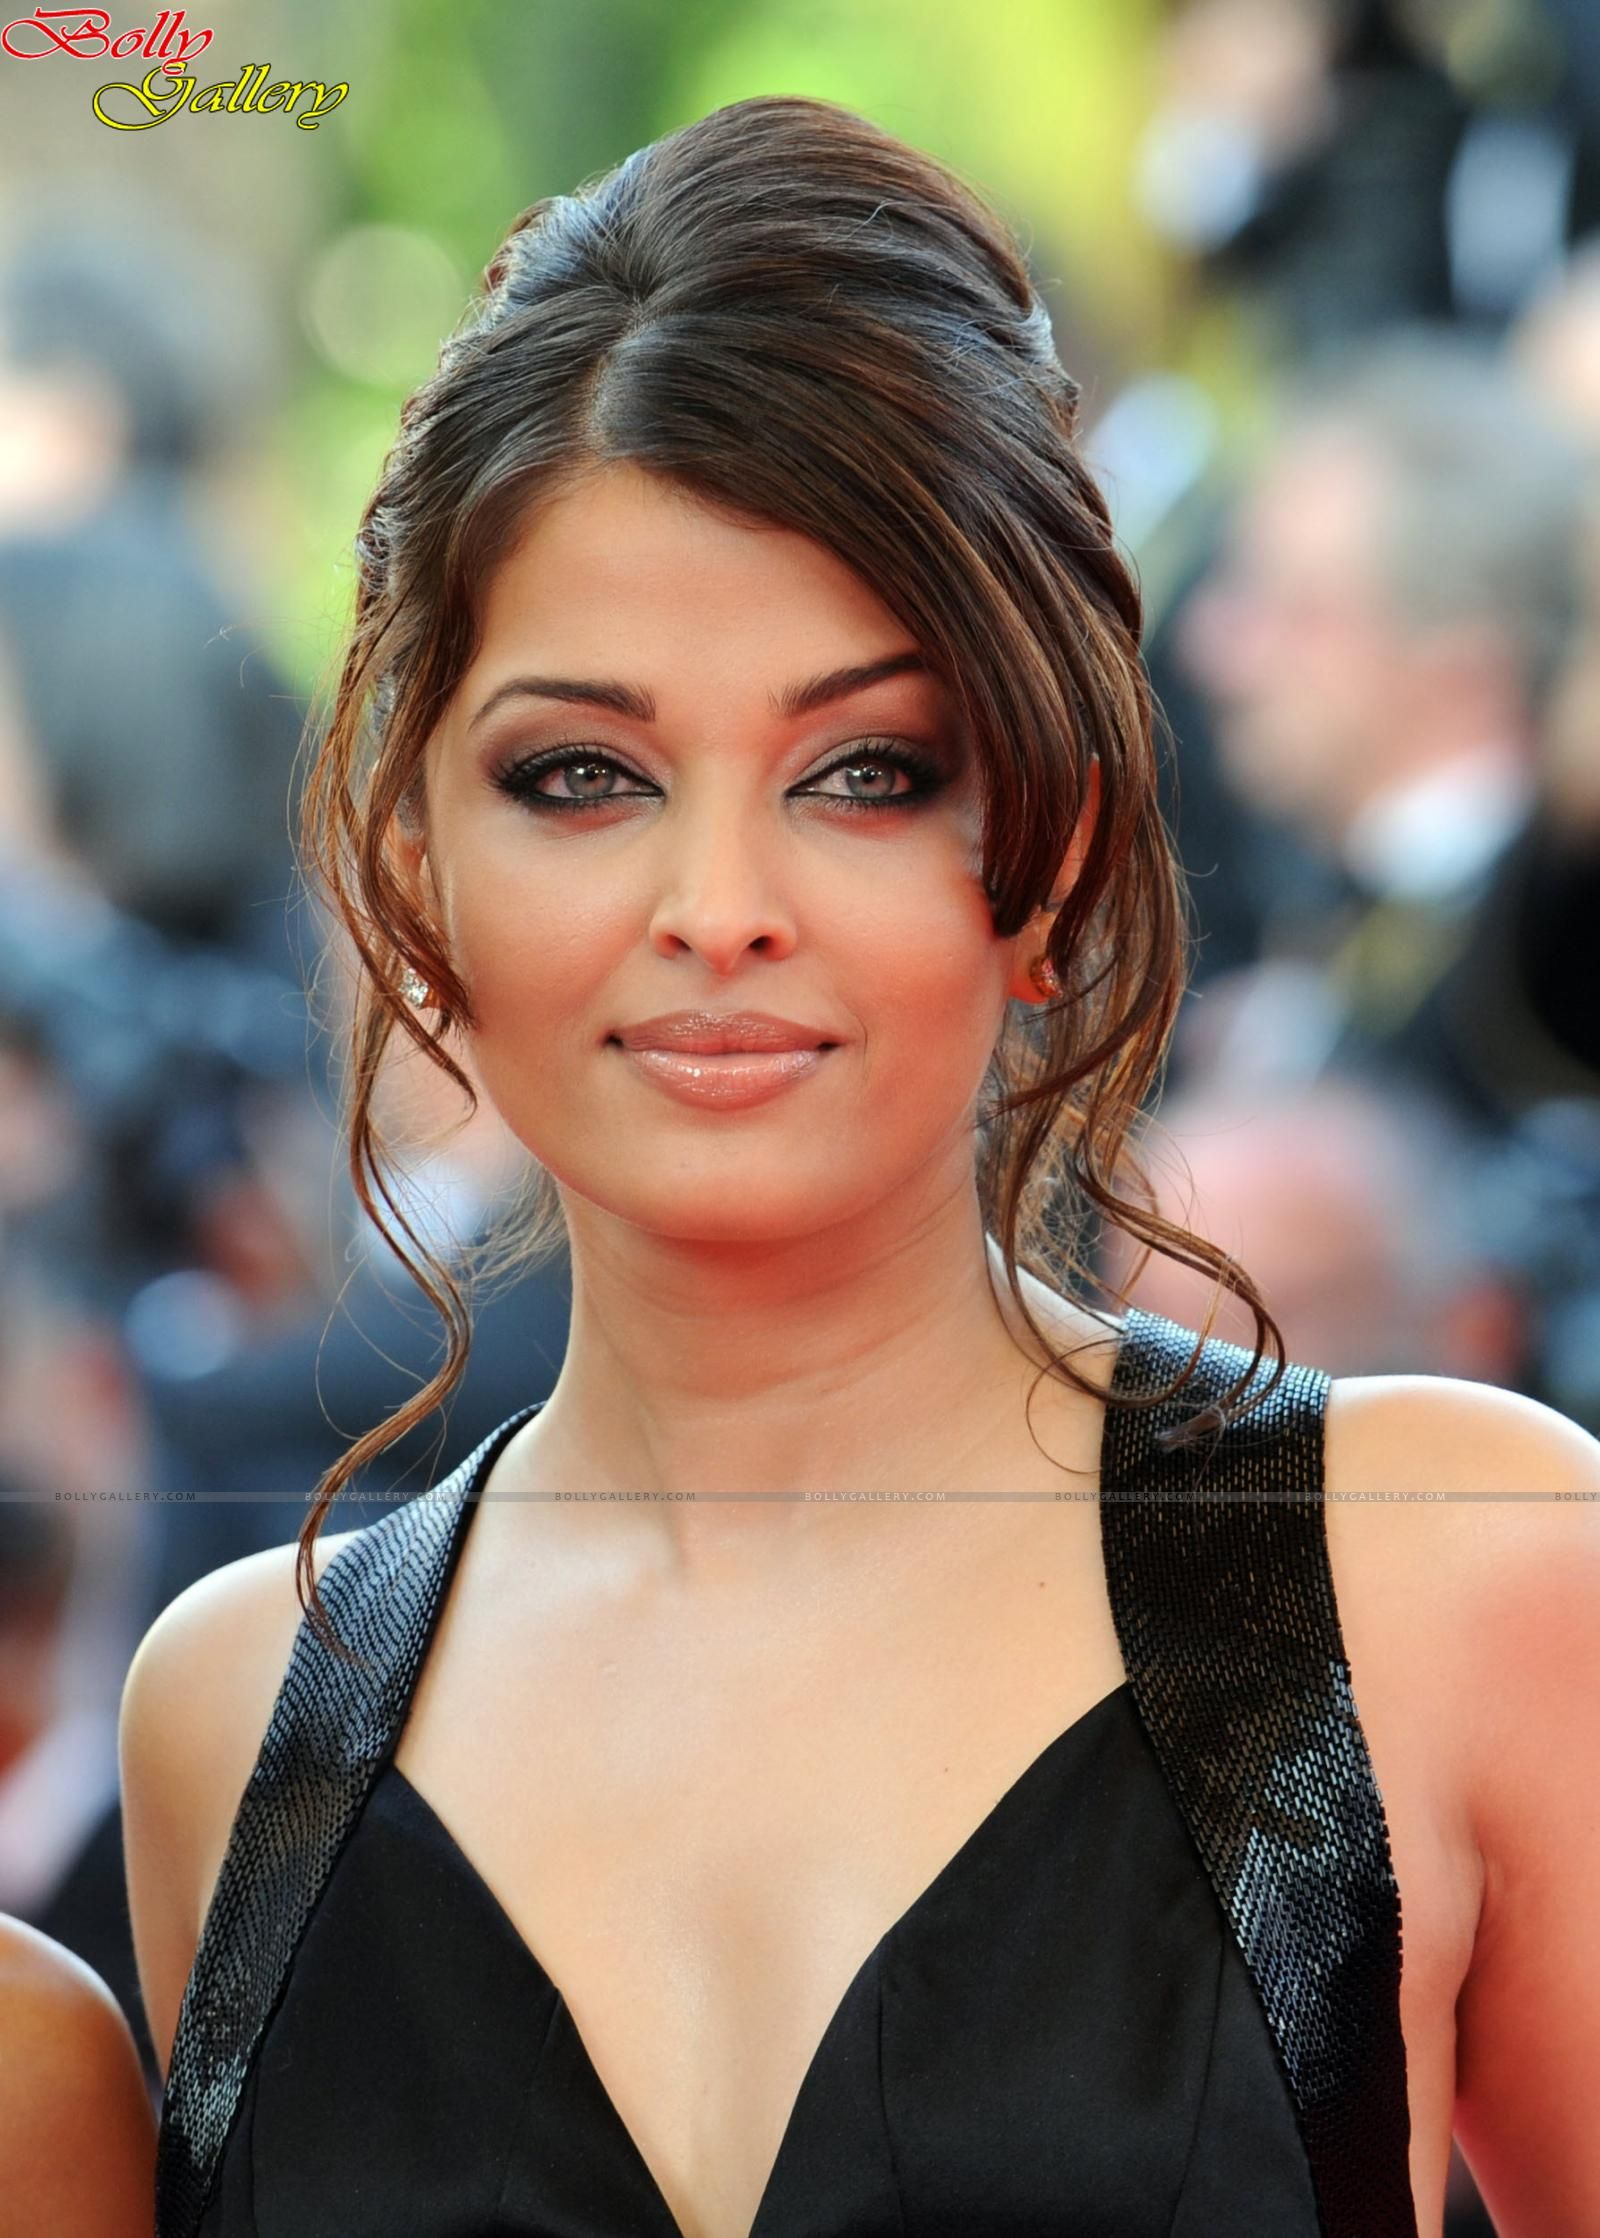 aishwarya rai bachchan filmleriaishwarya rai bachchan vk, aishwarya rai bachchan kimdir, aishwarya rai bachchan dance performance, aishwarya rai bachchan filme, aishwarya rai bachchan family, aishwarya rai bachchan imdb, aishwarya rai bachchan interview, aishwarya rai bachchan home video, aishwarya rai bachchan songs, aishwarya rai bachchan instagram, aishwarya rai bachchan biografia, aishwarya rai bachchan films, aishwarya rai bachchan official instagram, aishwarya rai bachchan wikipedia, aishwarya rai bachchan filmleri, aishwarya rai bachchan daughter, aishwarya rai bachchan facebook, aishwarya rai bachchan facebook official, aishwarya rai bachchan youtube, aishwarya rai bachchan illuminati